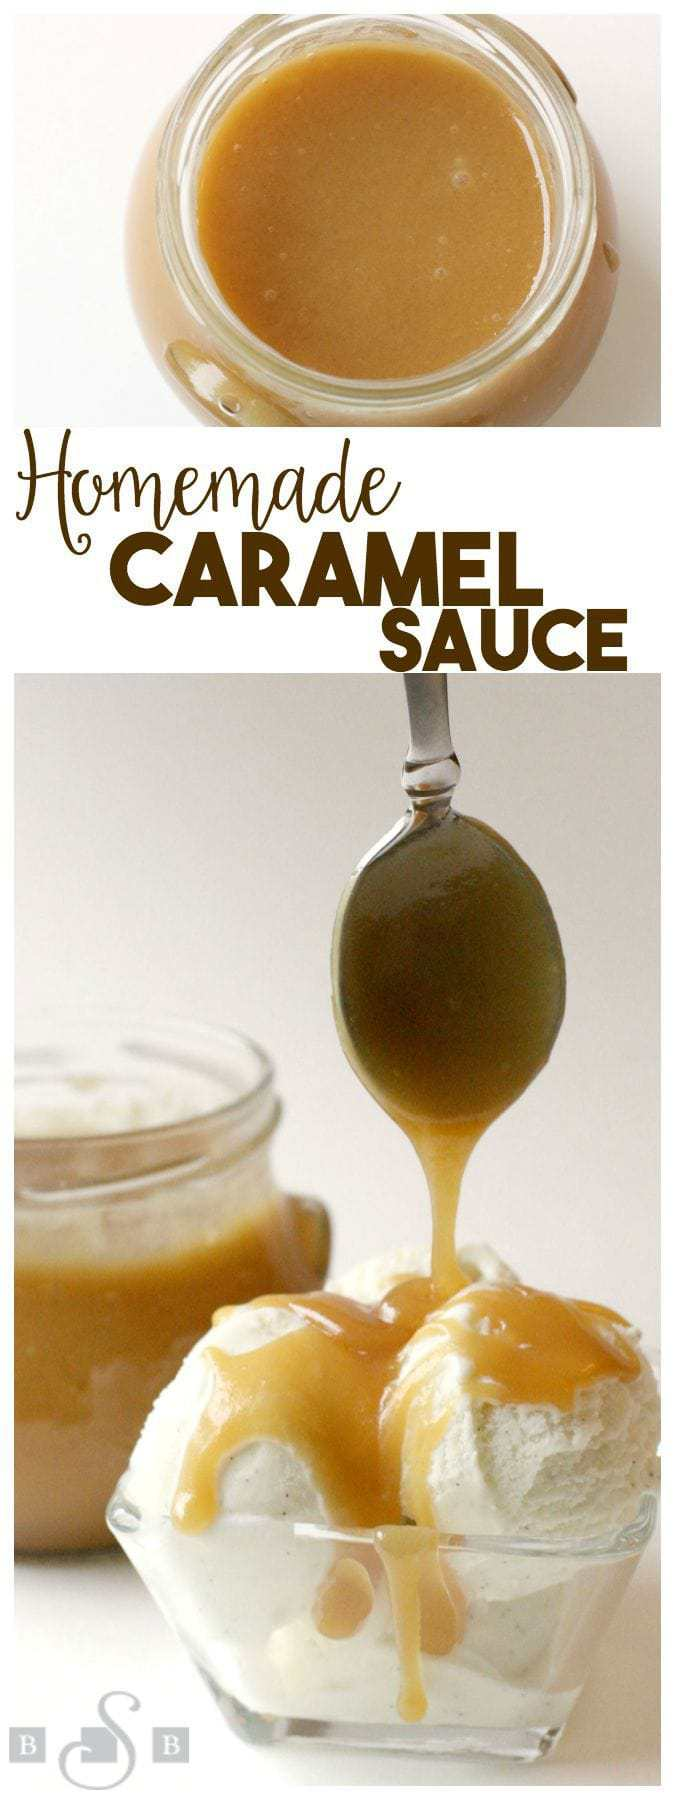 This recipe for caramel sauce has been in my husband's family for as long as I've known them. This recipe is the real deal- heavy cream and butter give it a delicious flavor that's irresistible. It's not difficult to make and there's no candy thermometer required. It's perfect drizzled over ice cream, on top of cakes, cookies- you name it! This caramel sauces firms up when cool, so it's also great for coating pretzels, apples, etc.